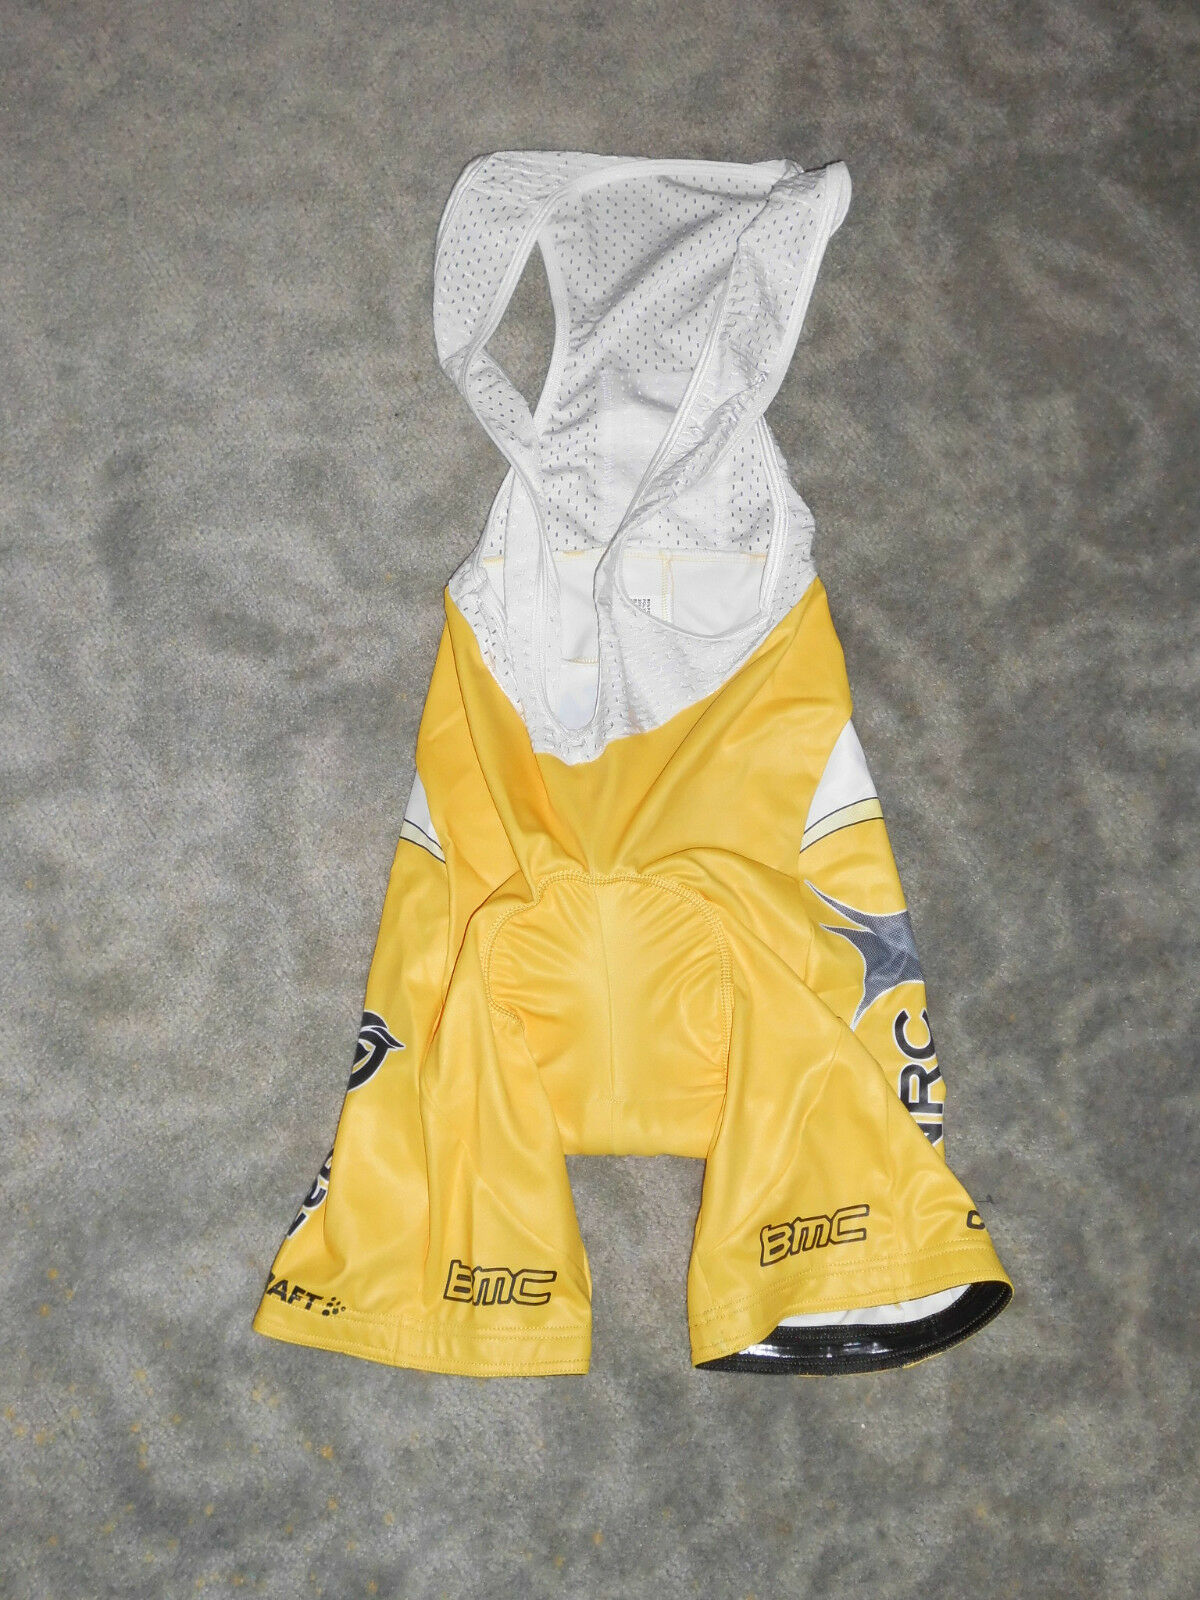 Rarität Craft Team Astana BMC Tour de France Leader Bib Short Gr. S